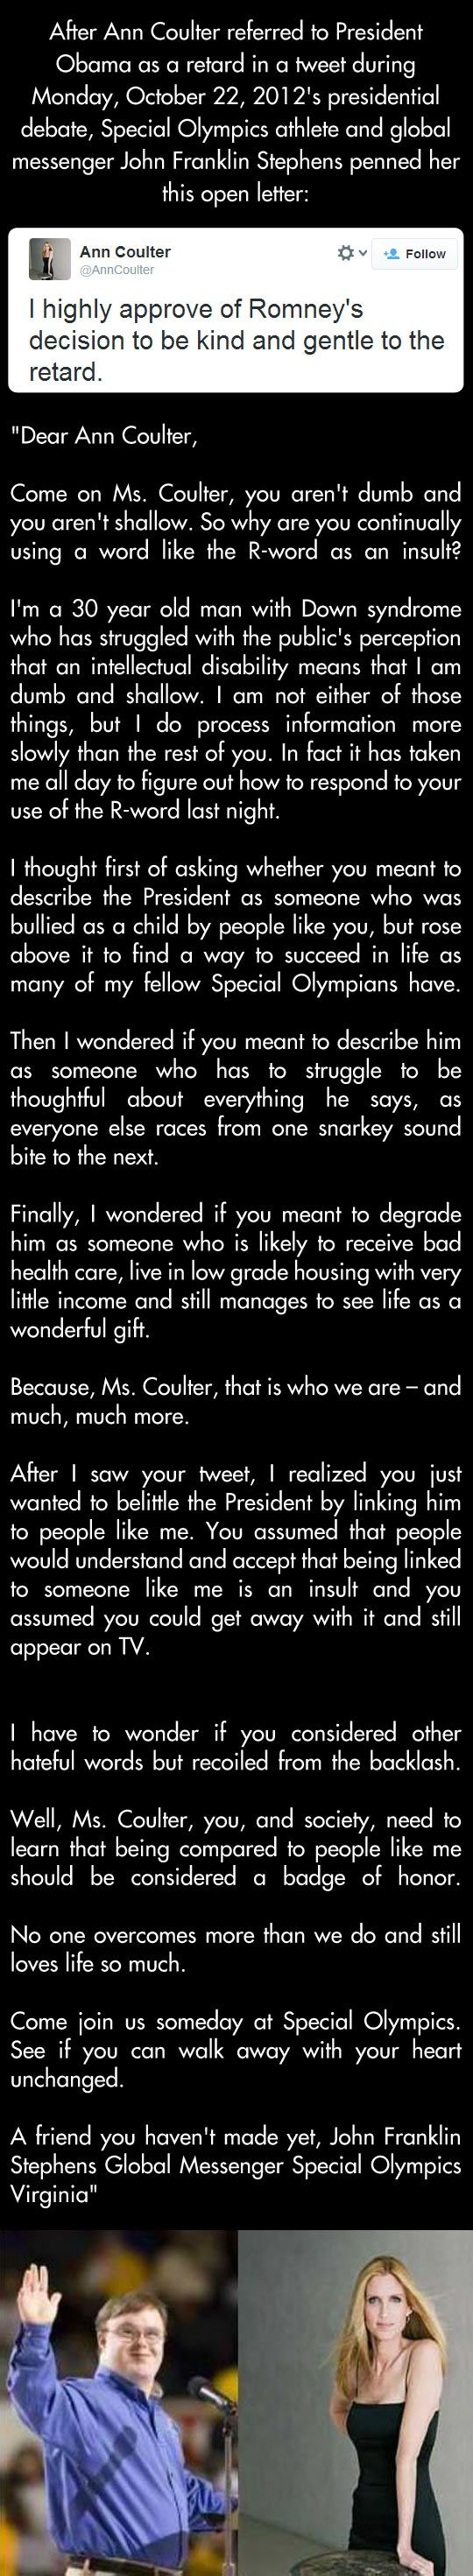 Special Olympics Athlete with downs syndrome writes to Ann Coulter after she calls the president a retard.